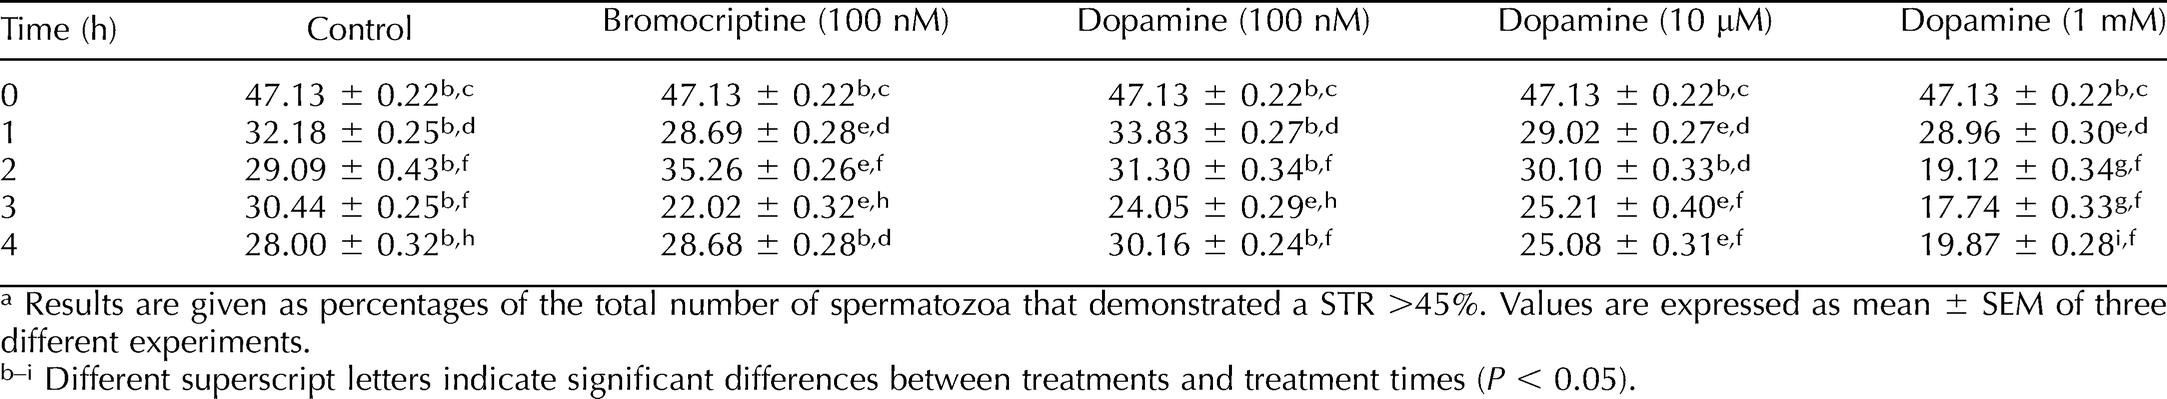 The Presence and Function of Dopamine Type 2 Receptors in